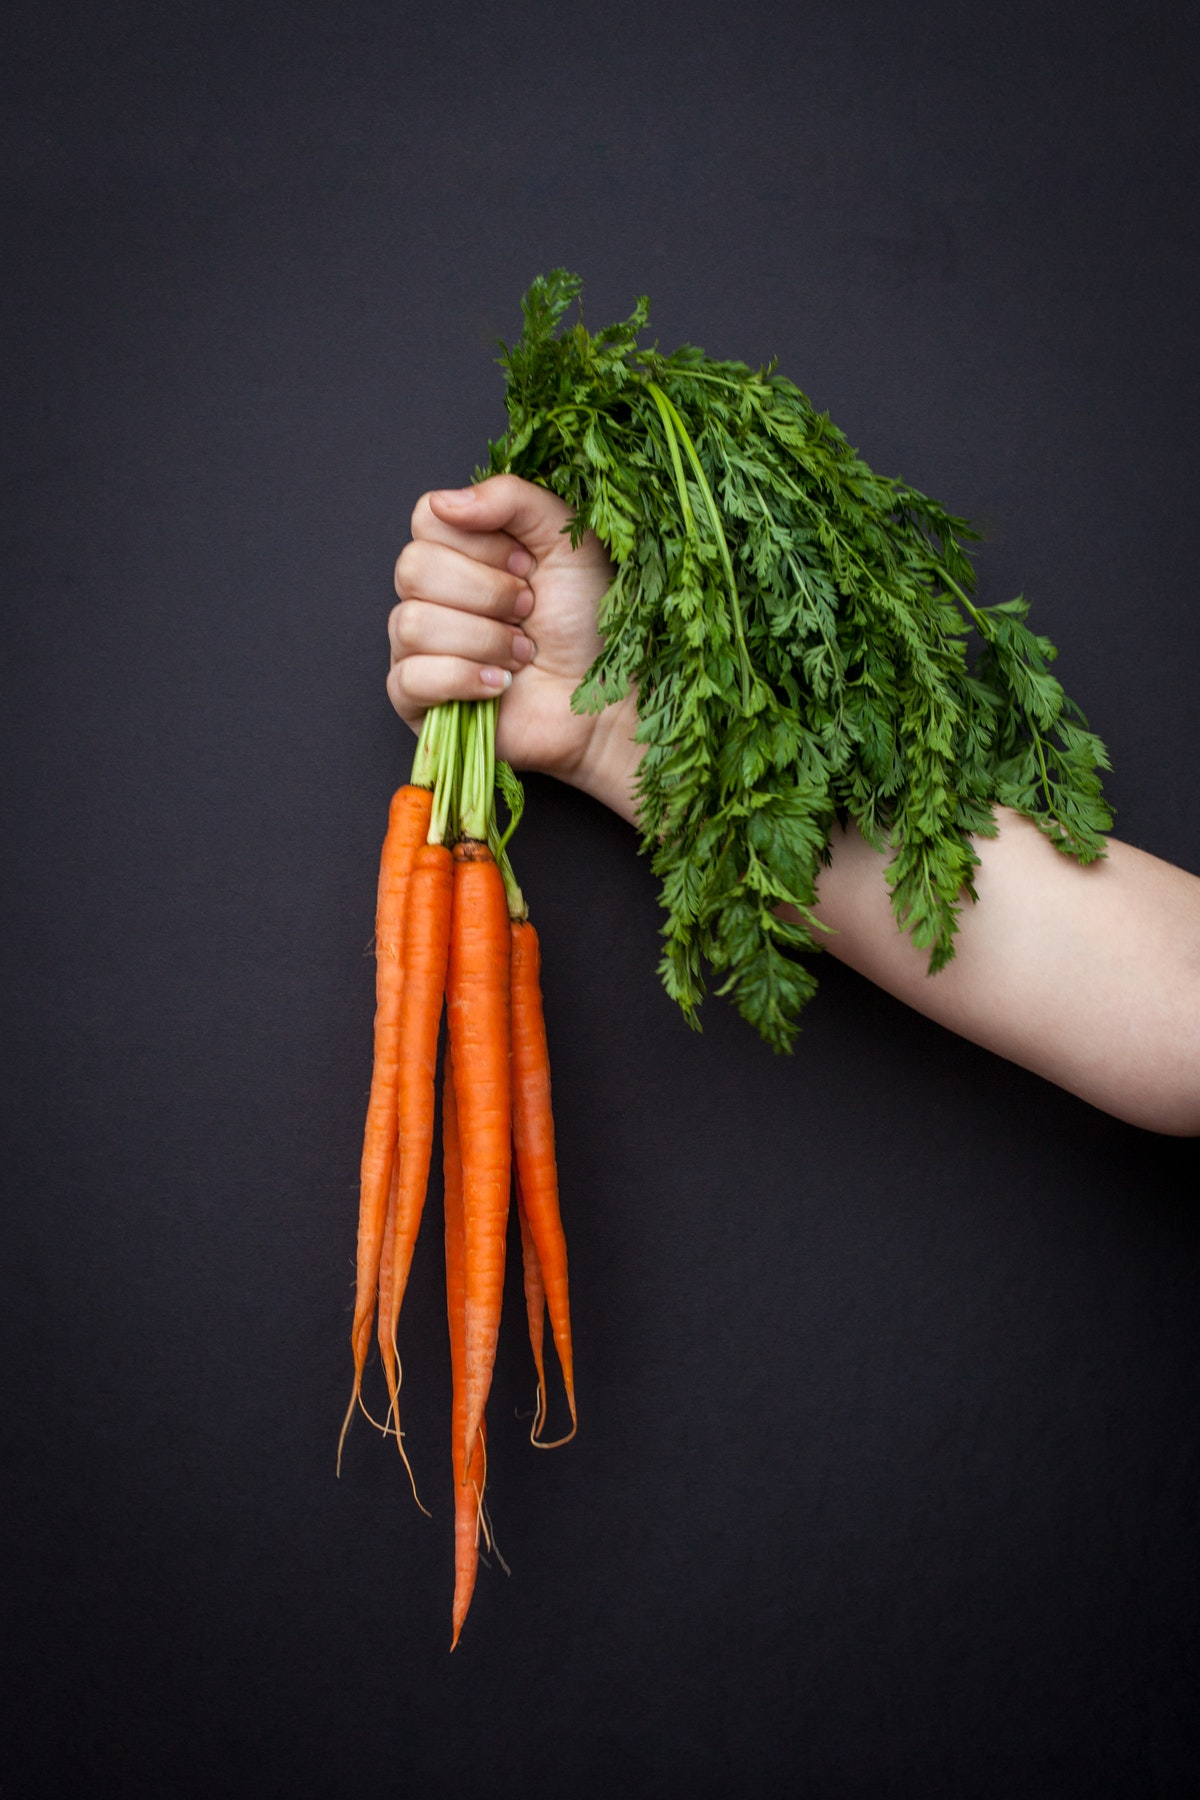 inverse.com - Sarah Sloat - Prescription Vegetables? The Potential of Insurance-Covered Healthy Food